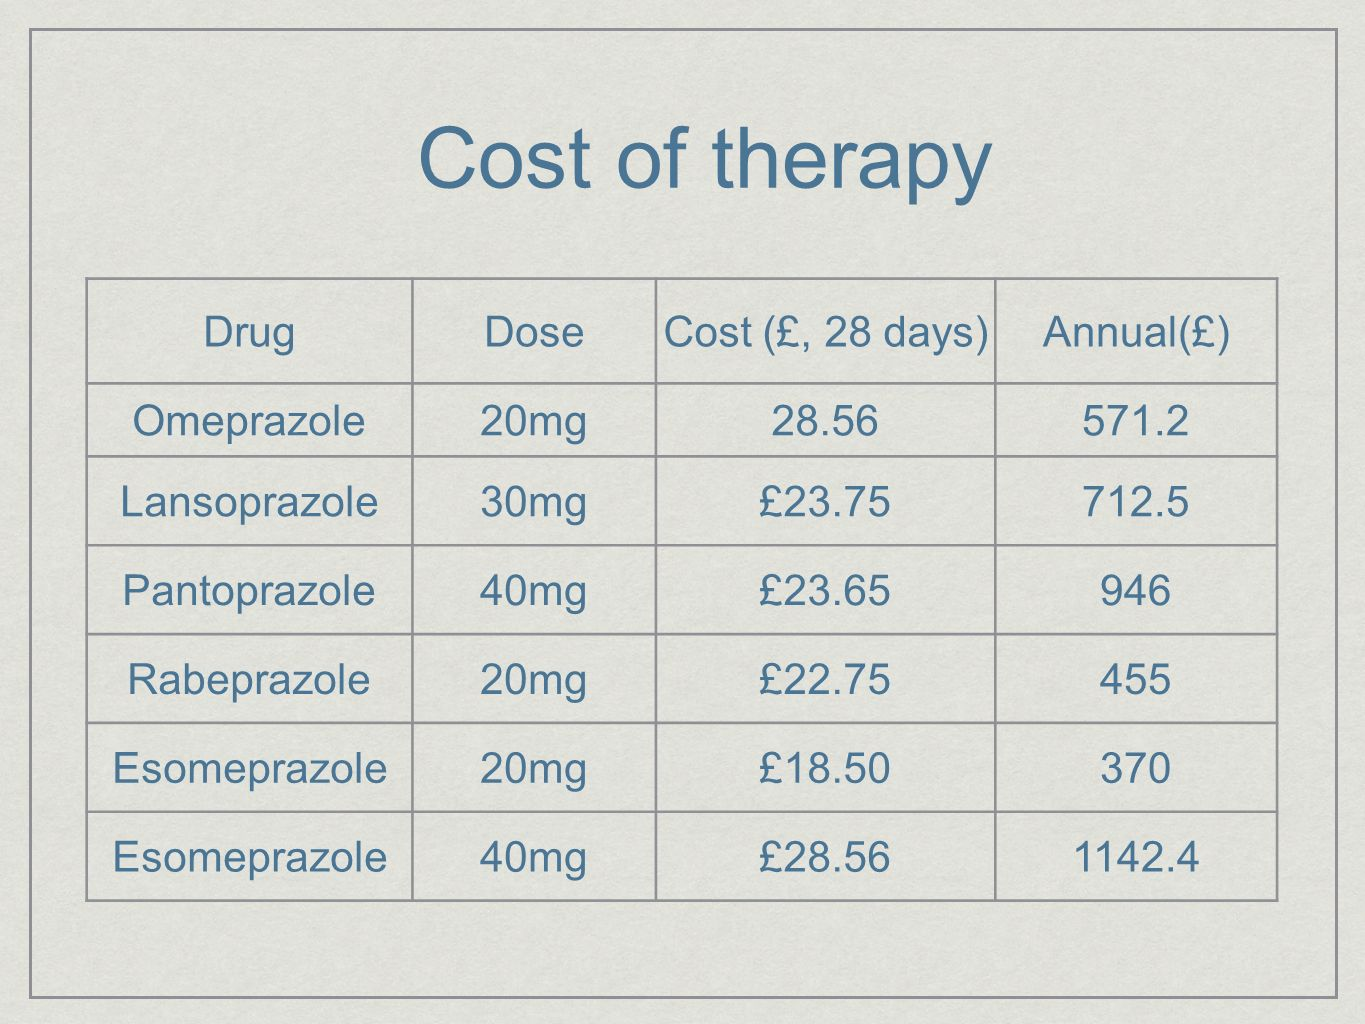 Cost of therapy Drug Dose Cost (£, 28 days) Annual(£) Omeprazole 20mg